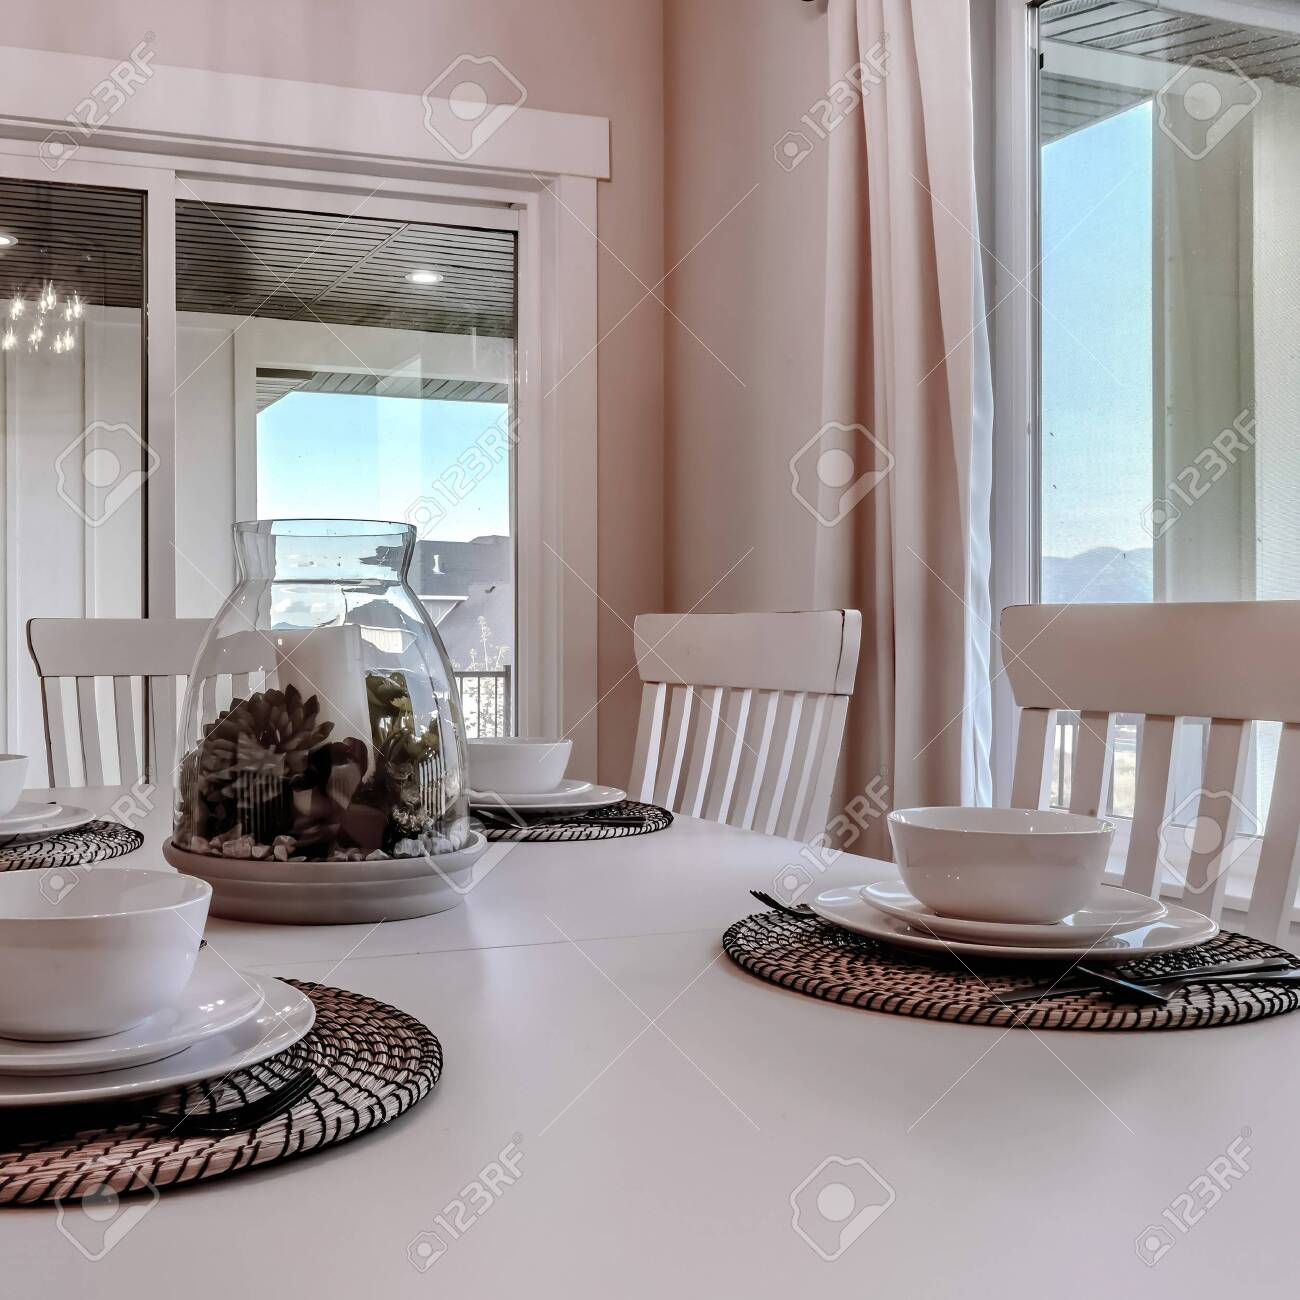 Square Frame Dining Table With Chairs And Tableware Arranged Stock Photo Picture And Royalty Free Image Image 149375733